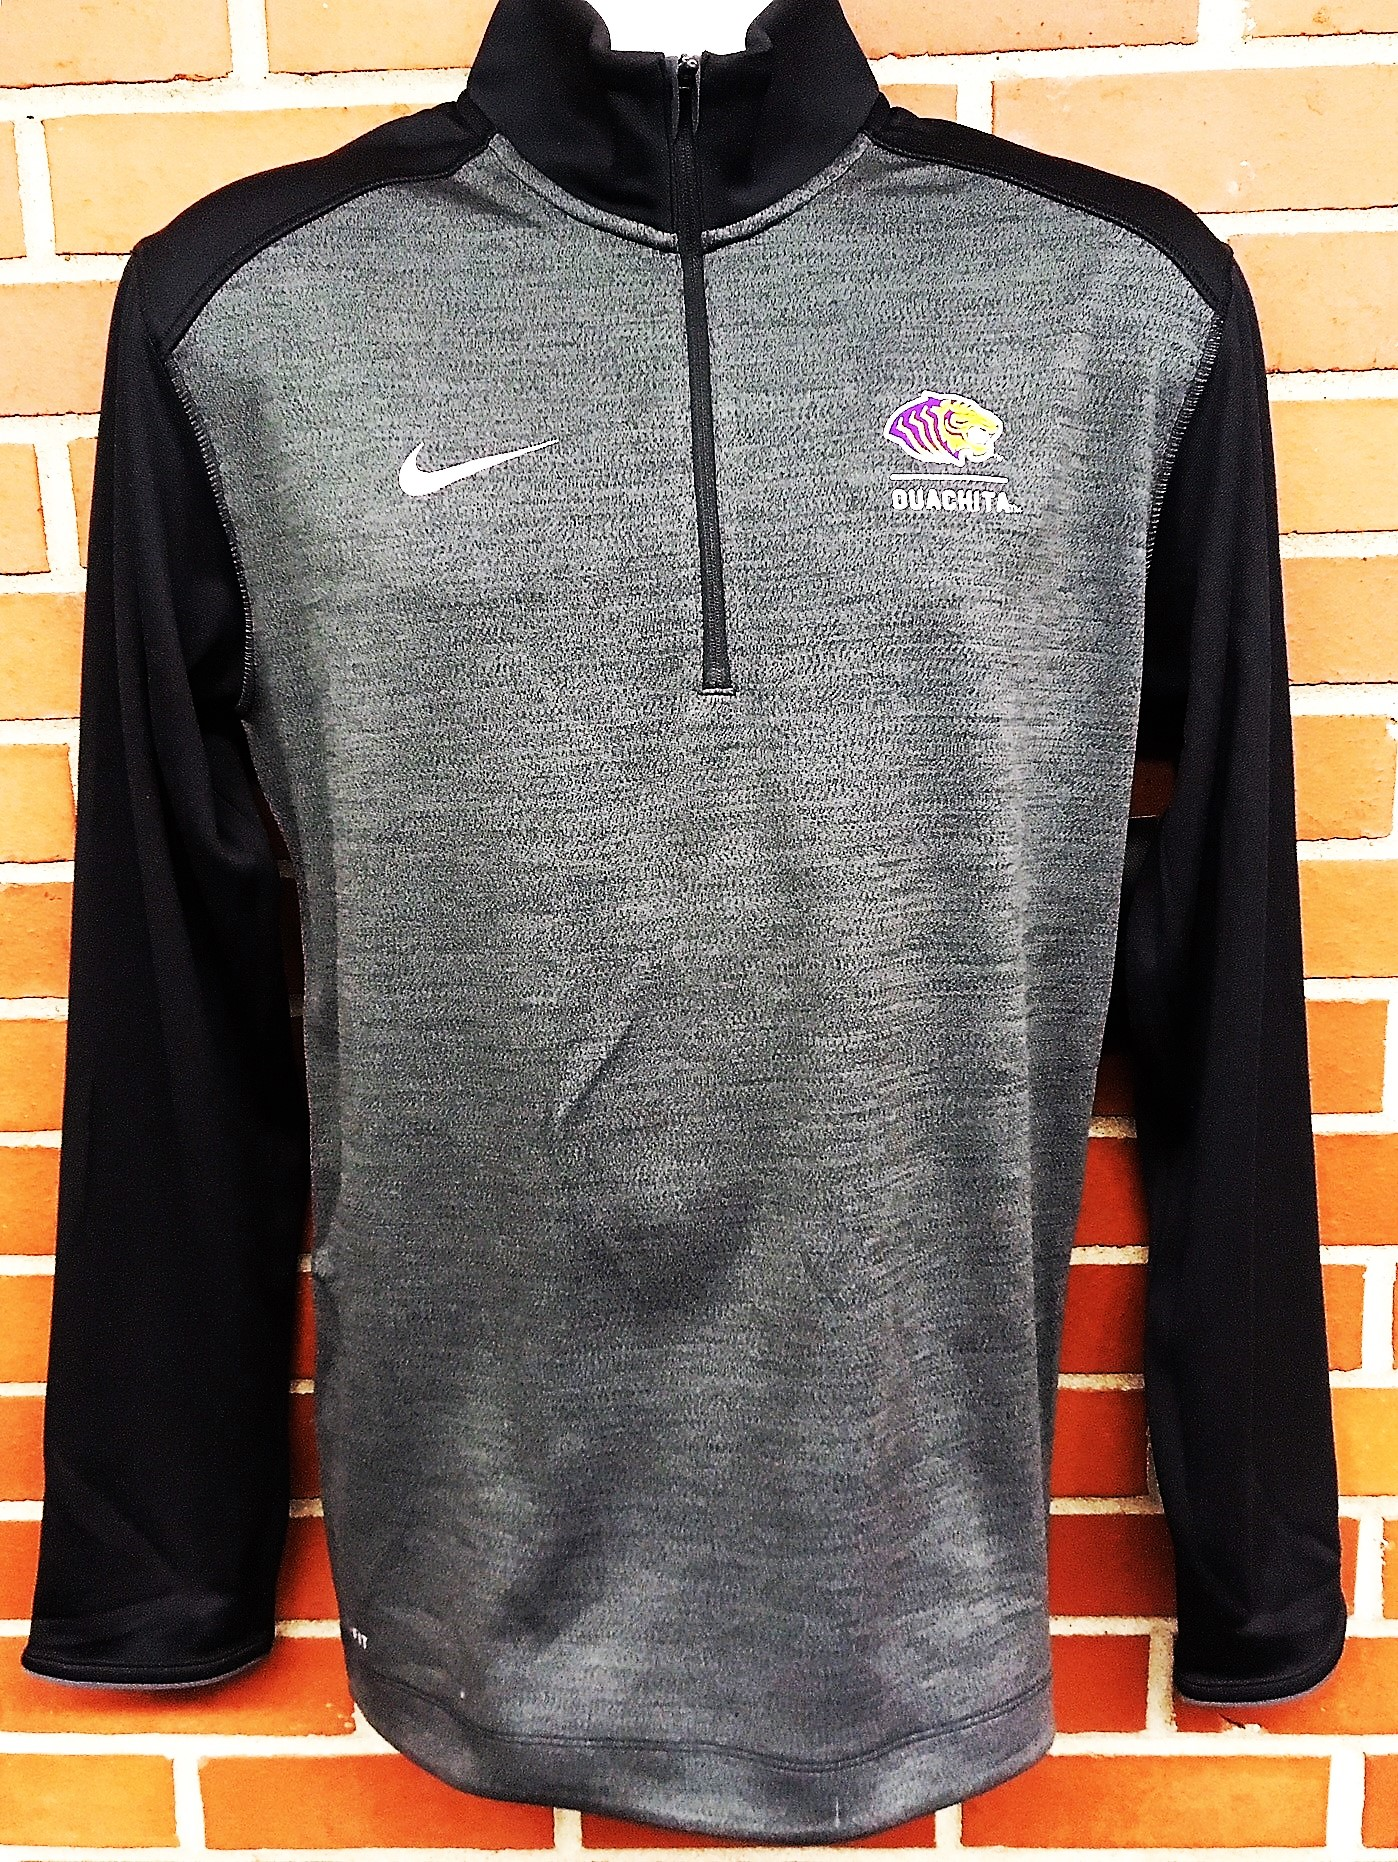 OUACHITA 1/4 ZIP COACHES PULLOVER